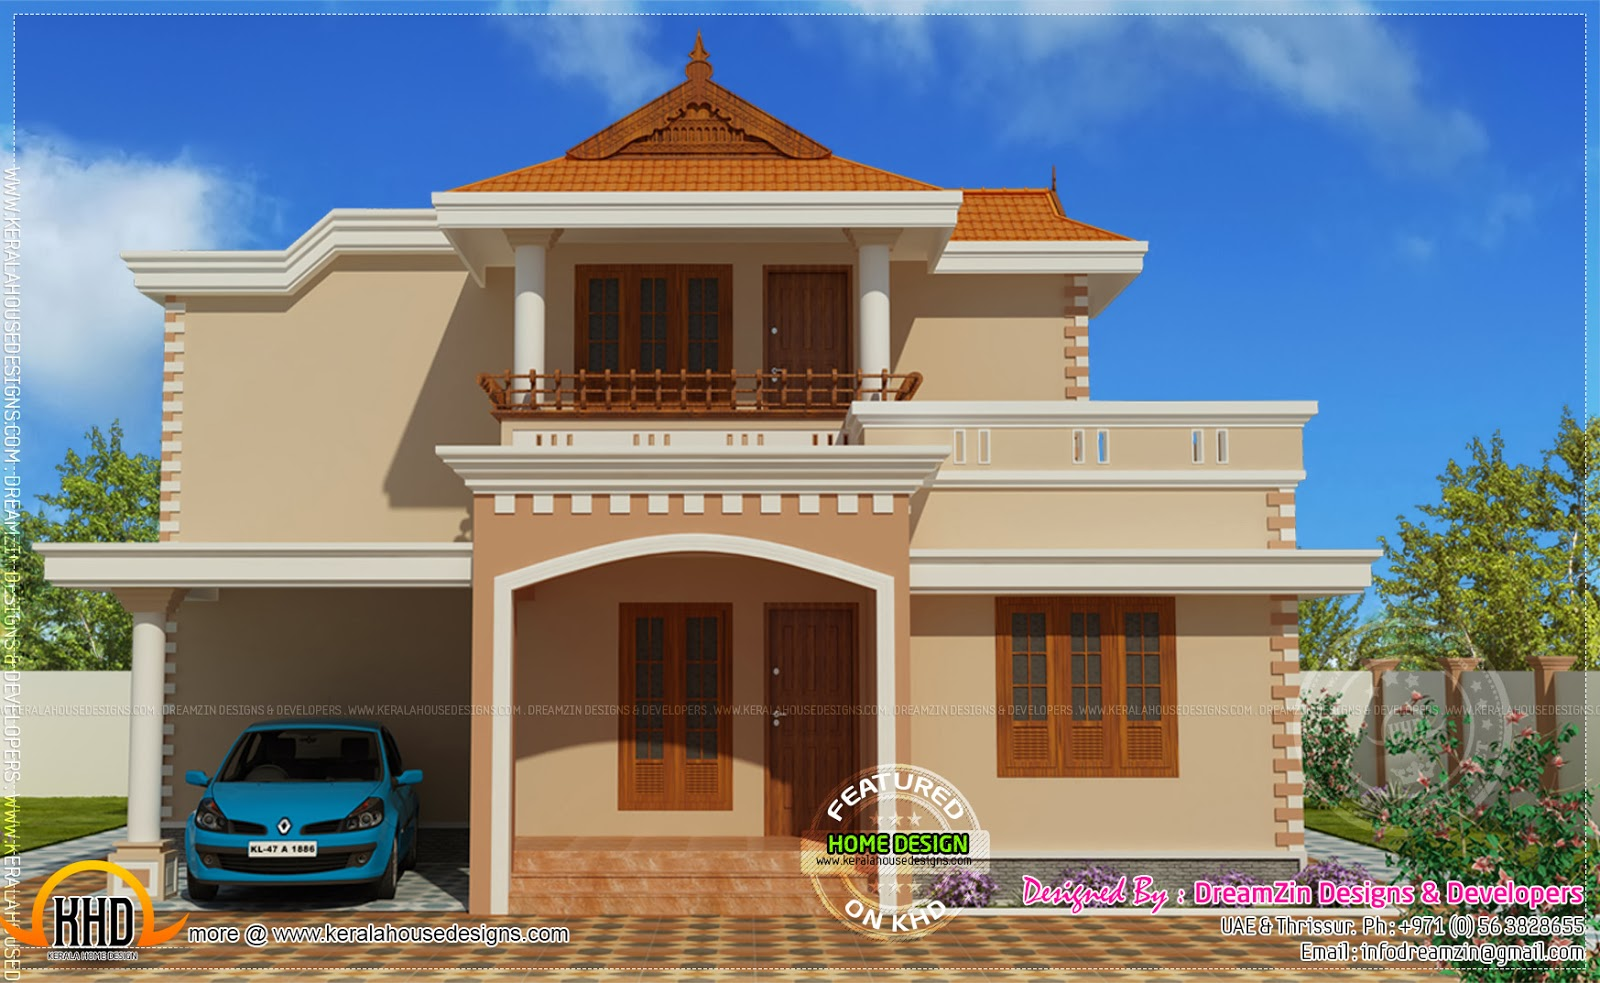 Simple house elevation joy studio design gallery best design Front of home design ideas